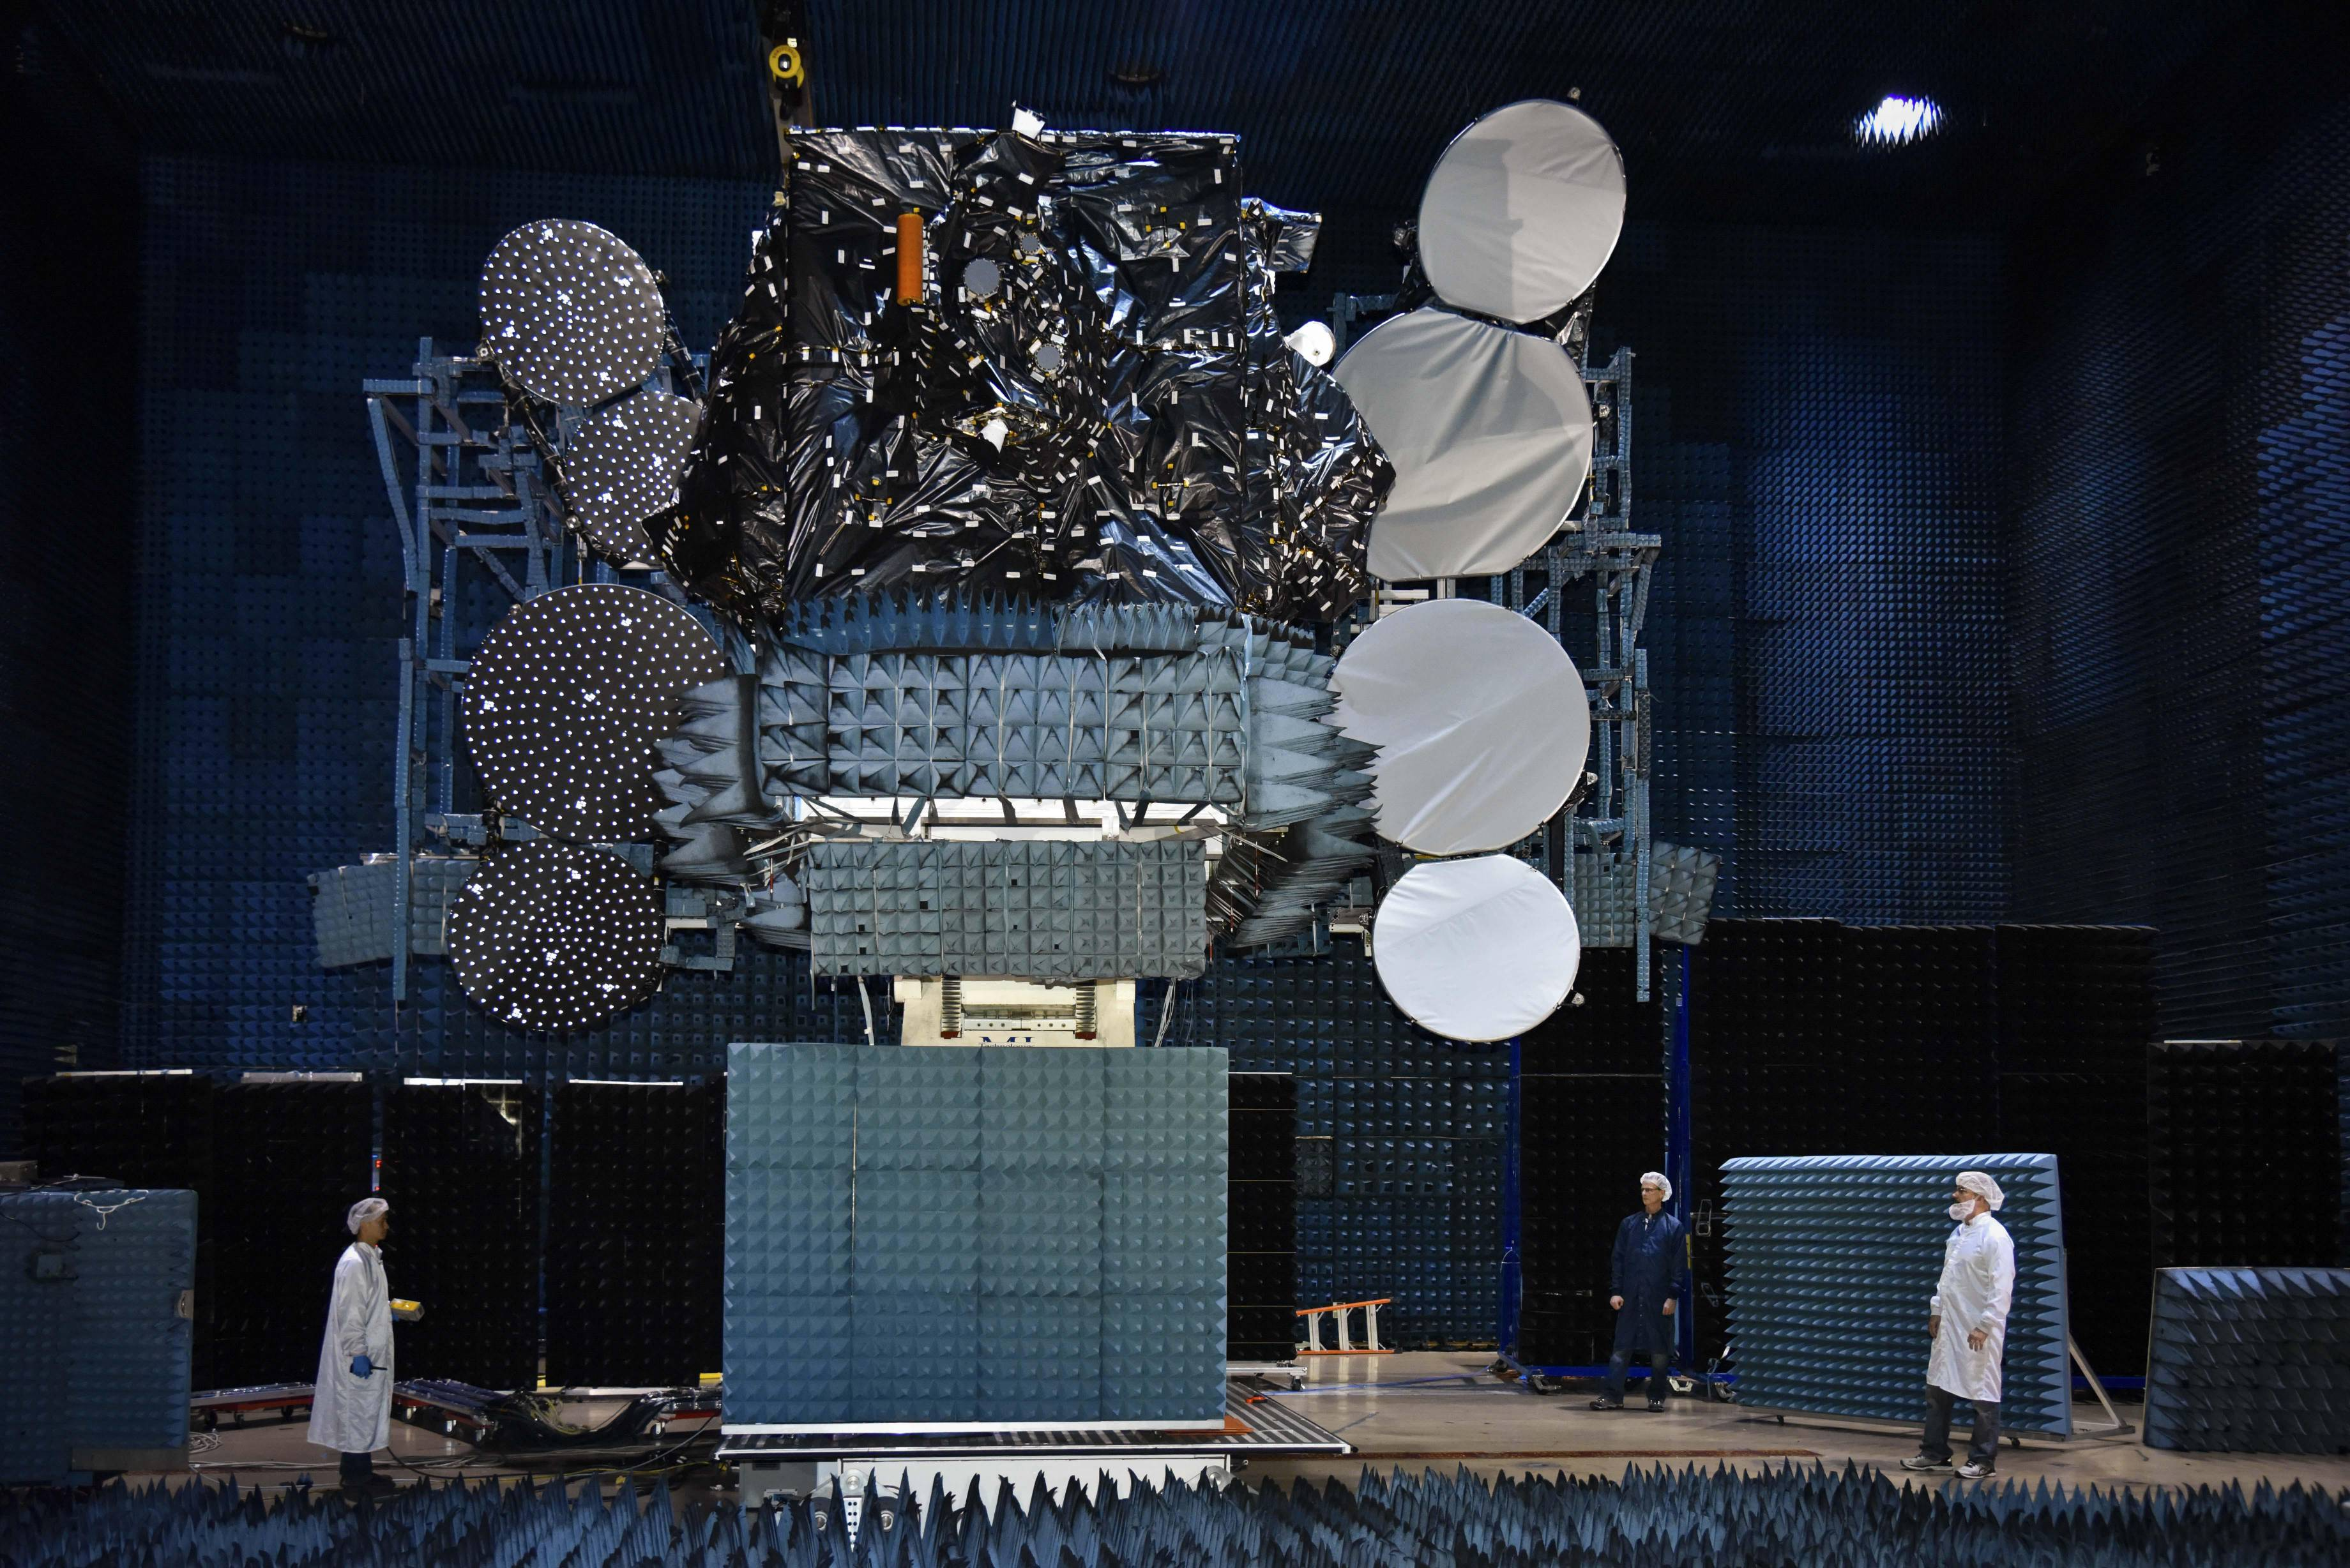 Telstar 19V anechoic chamber tests (SSL)(c)